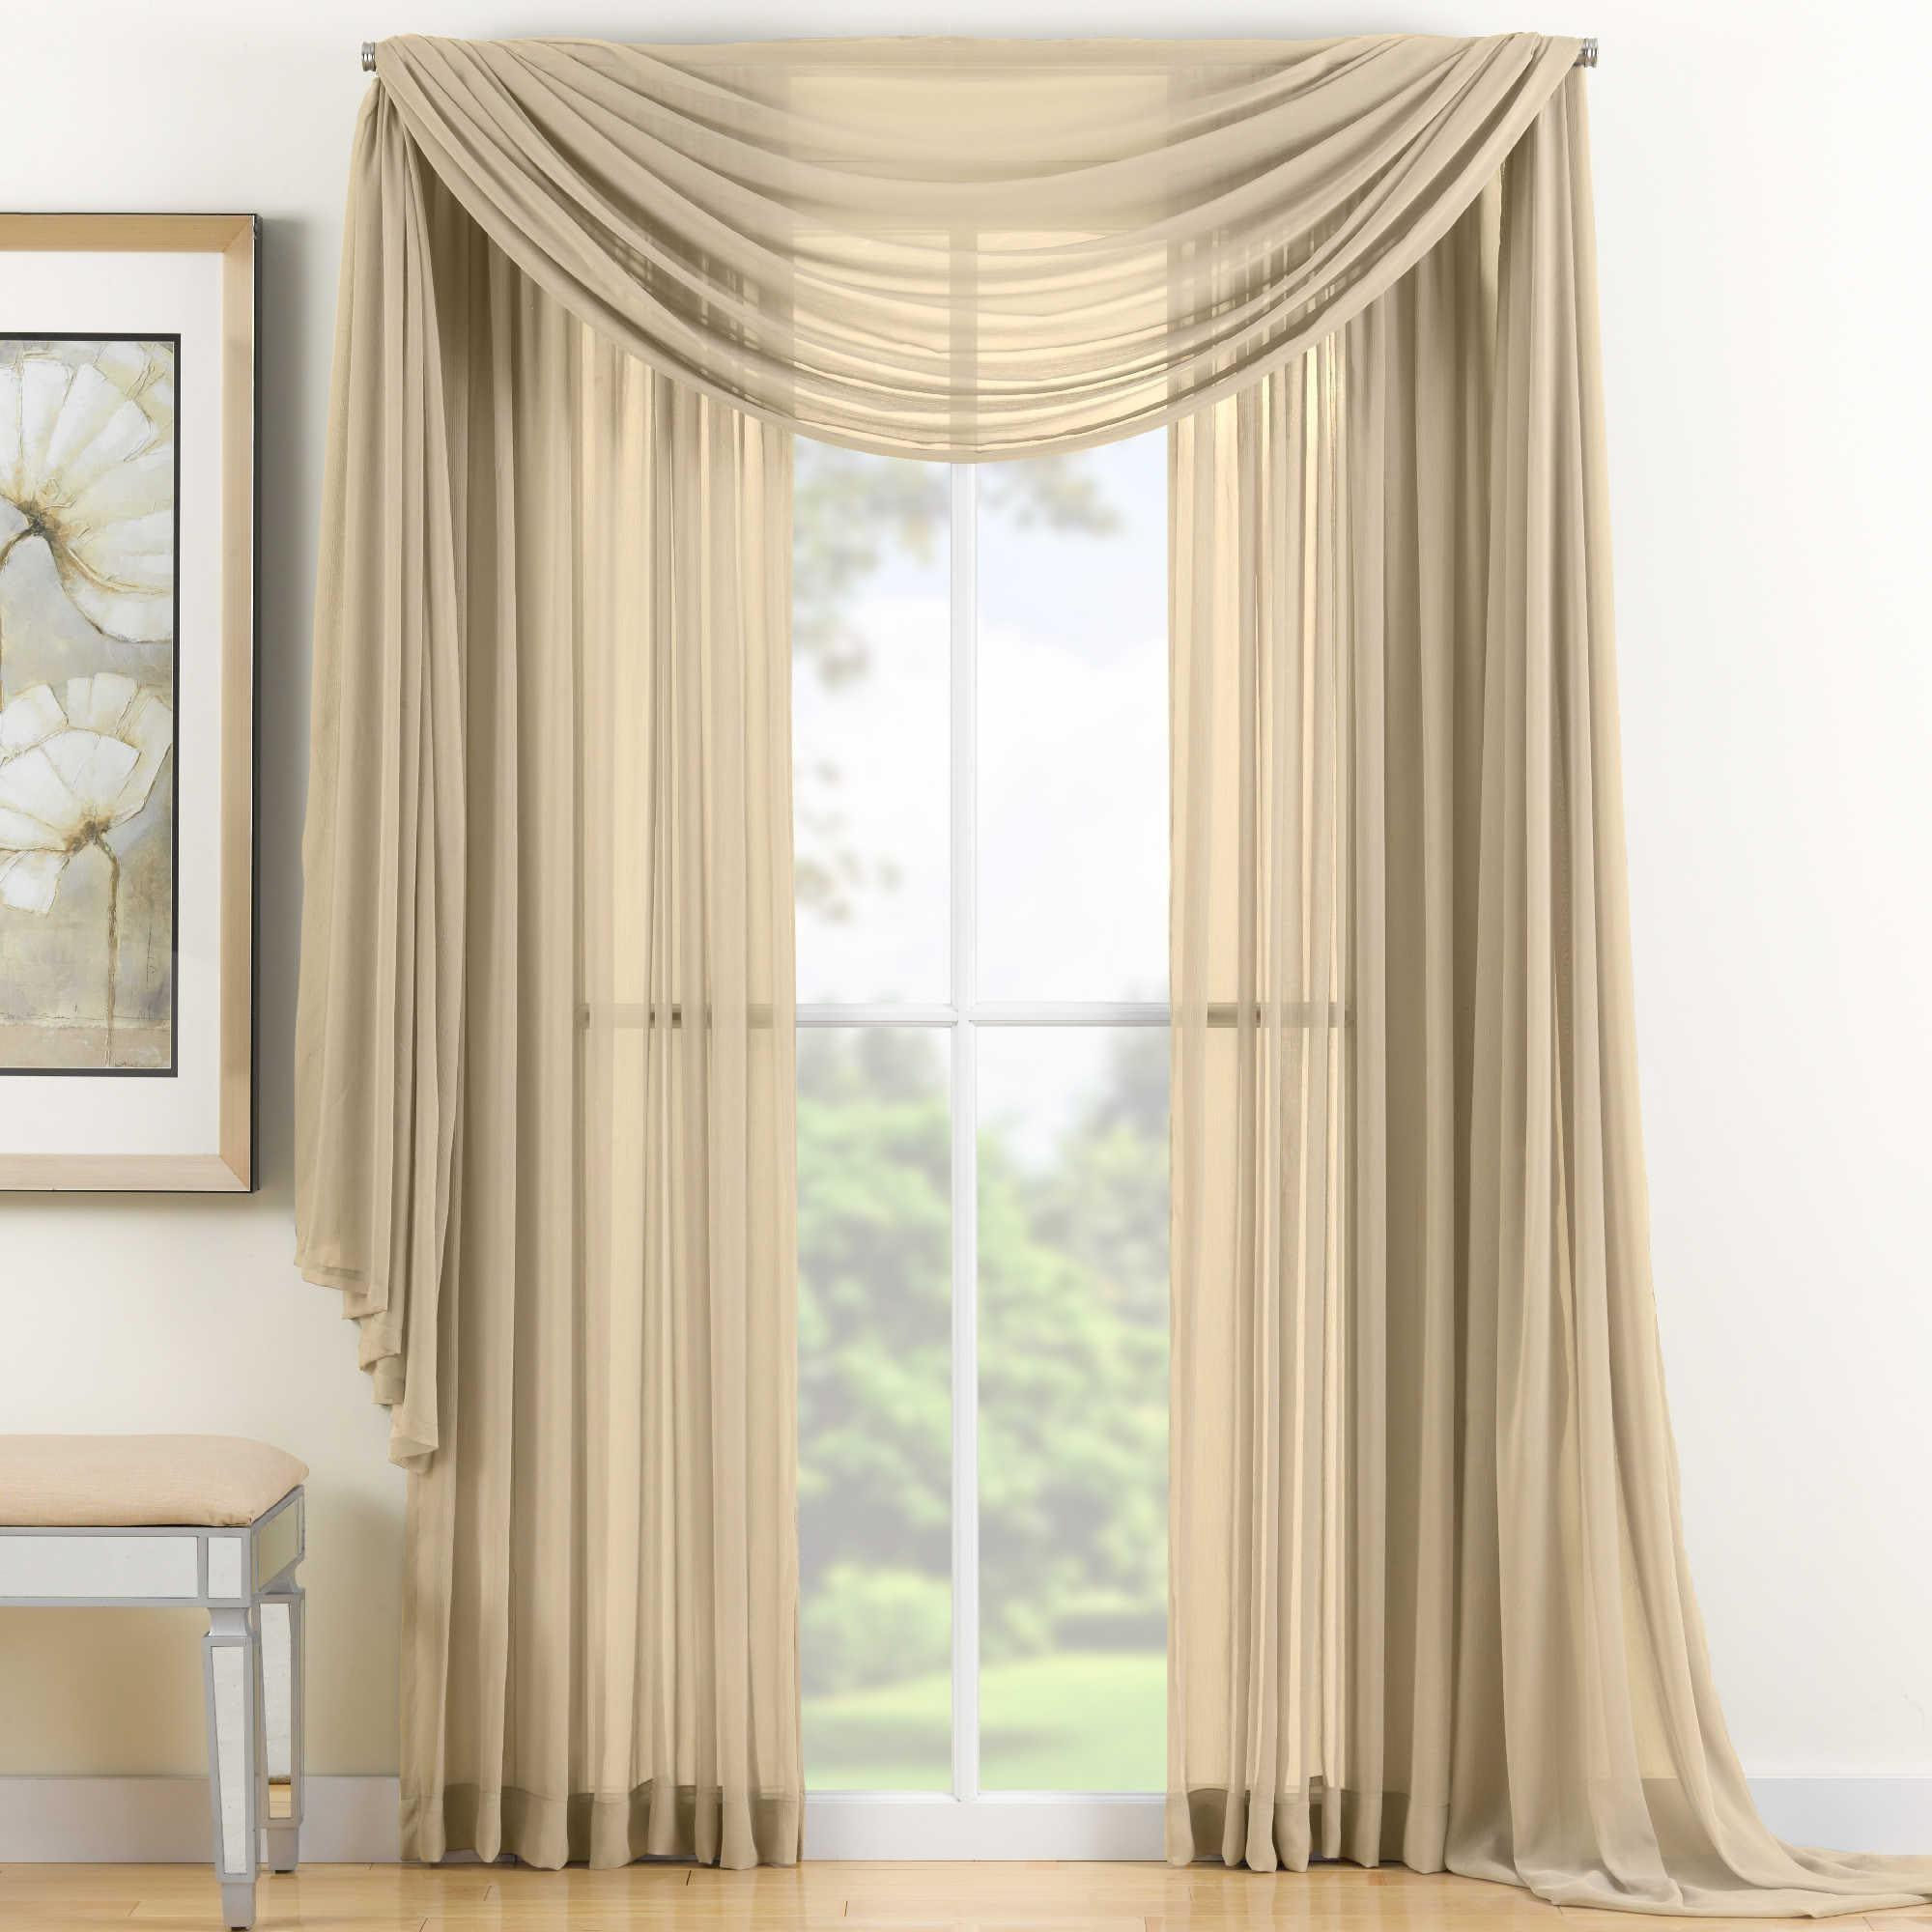 Gold Sheer Scarf Valance Window Treatments Design Ideas Decoratorist 127648